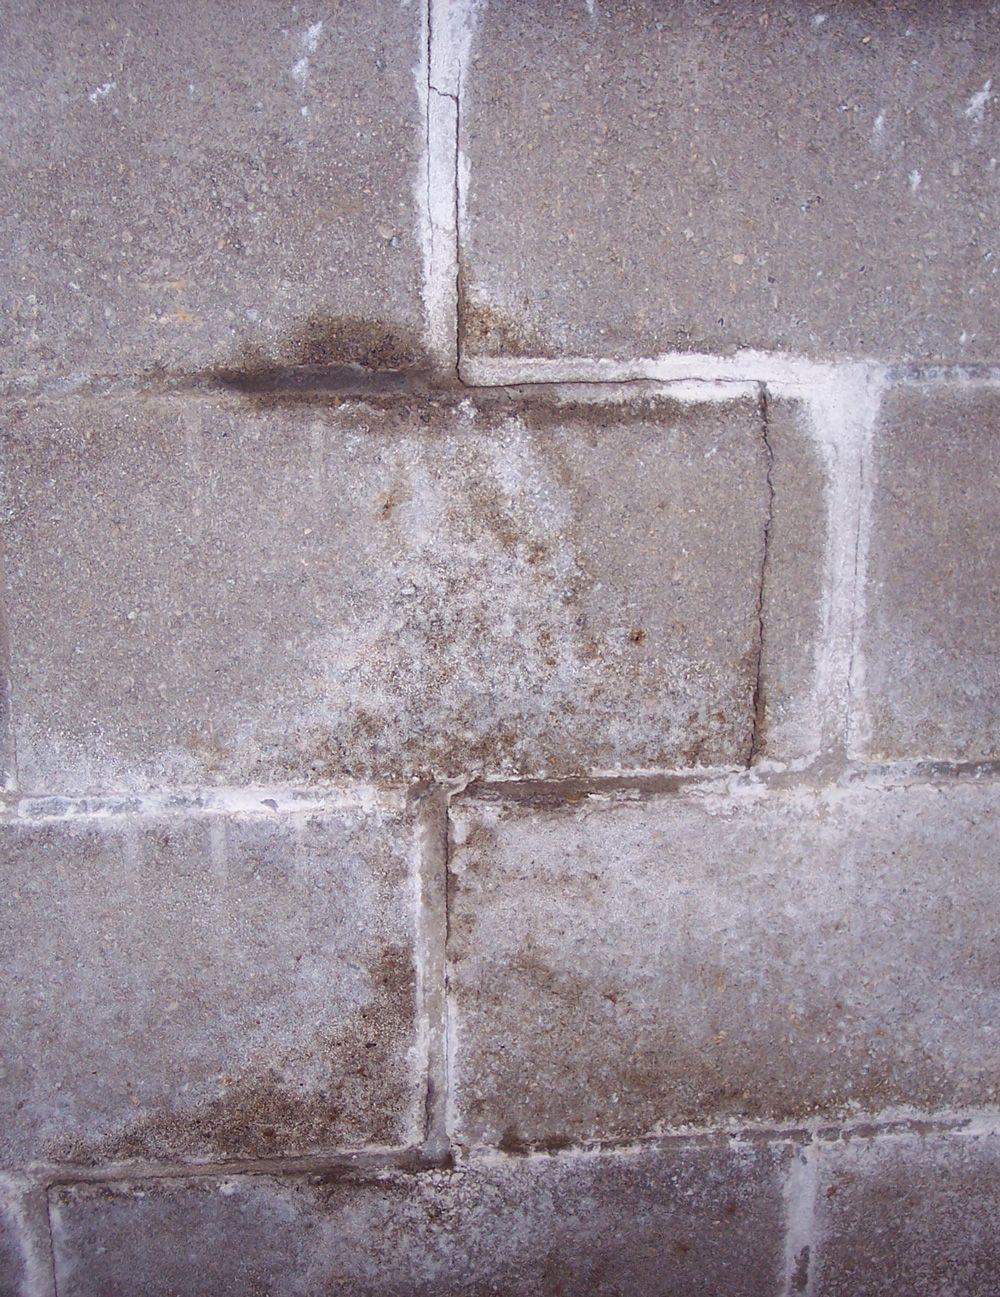 How To Repair Cracks In Concrete Blocks You Can Do It